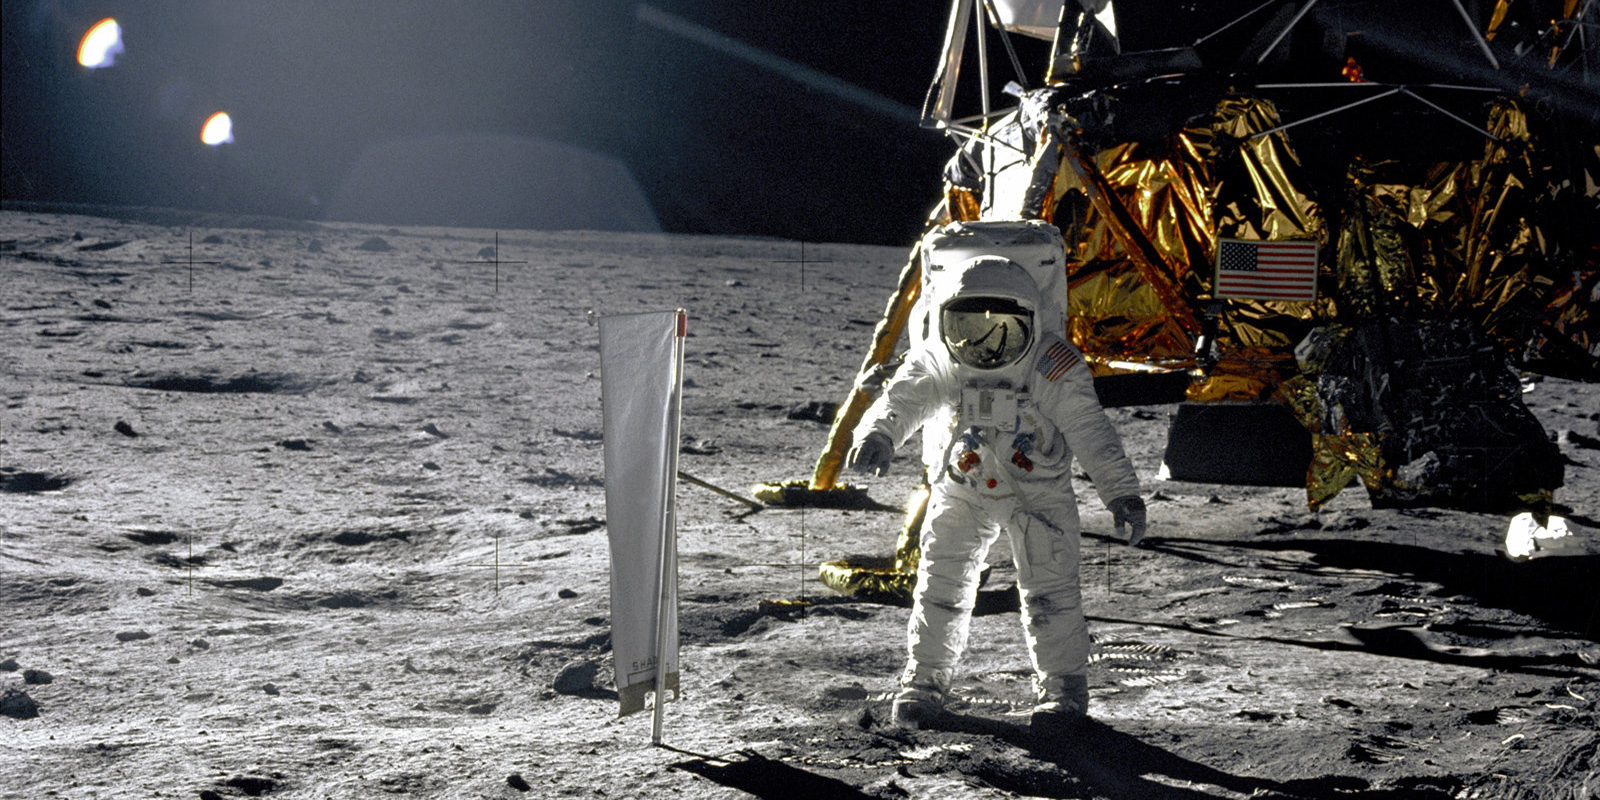 Image of astronaut on moon with landing equipment behind him from 1969 Apollo 11 mission